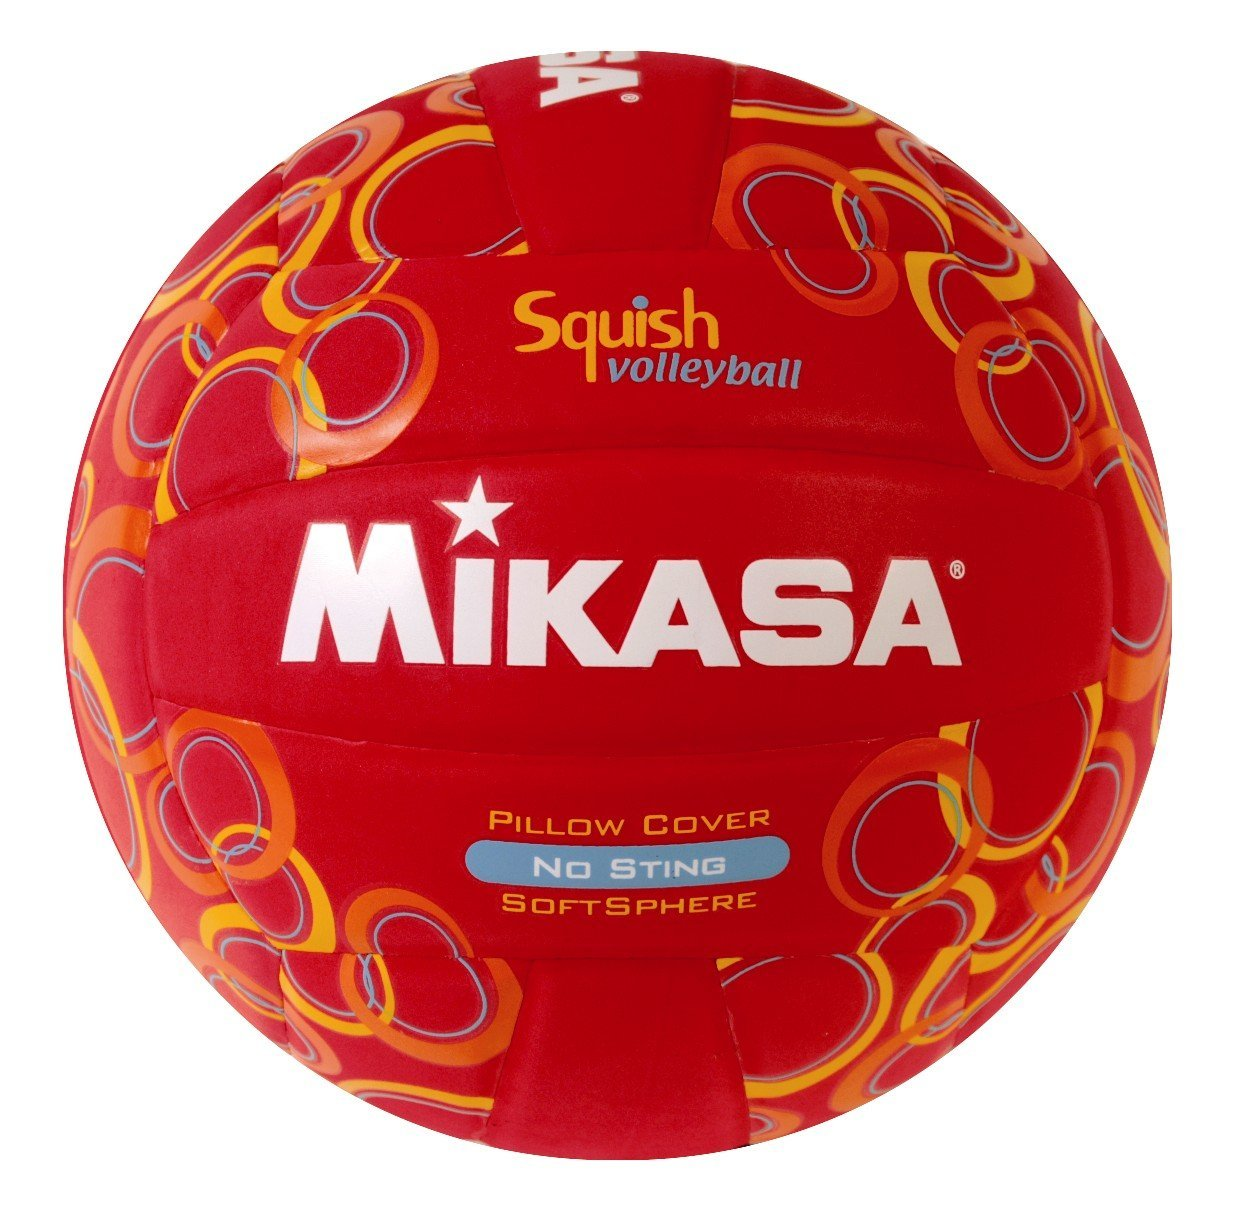 Mikasa Squish VSV104 No-Sting Volleyball (Red/Circles), Volleyball Squish VSV104 NoSting RedCircles Mikasa By Mikasa Sports